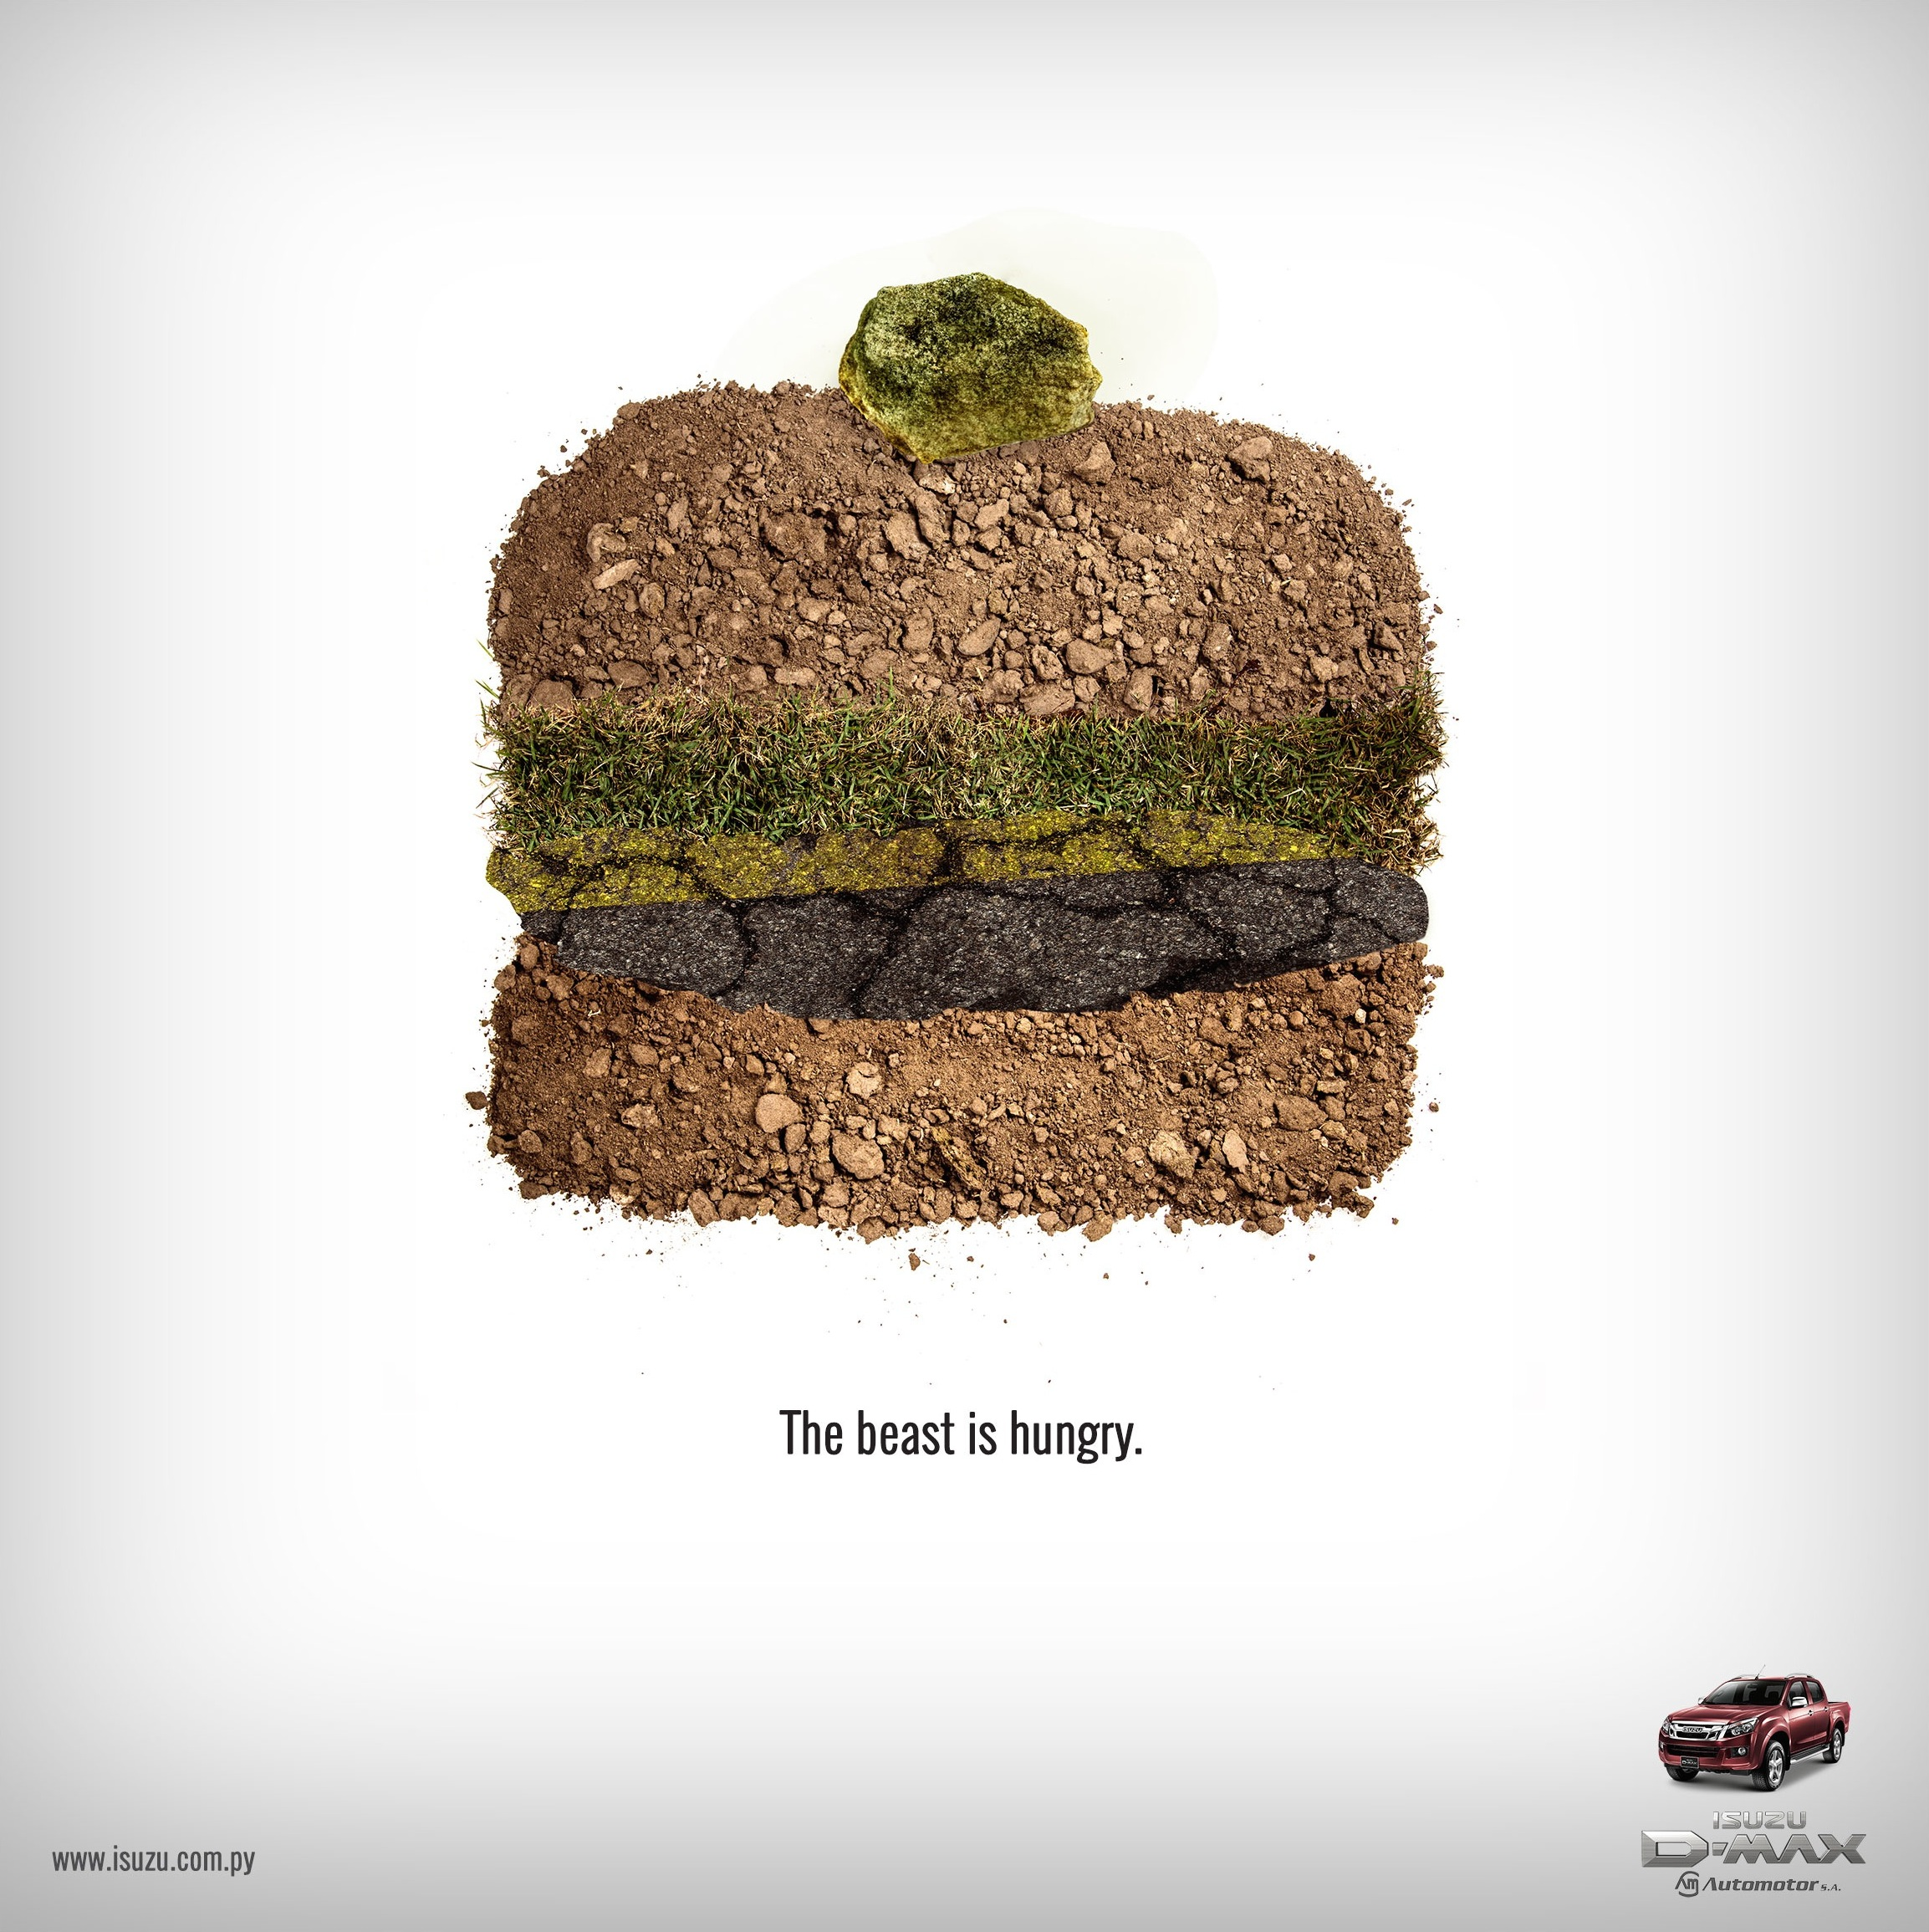 16 Creative Design Inspirations From Award Winning Print Ads